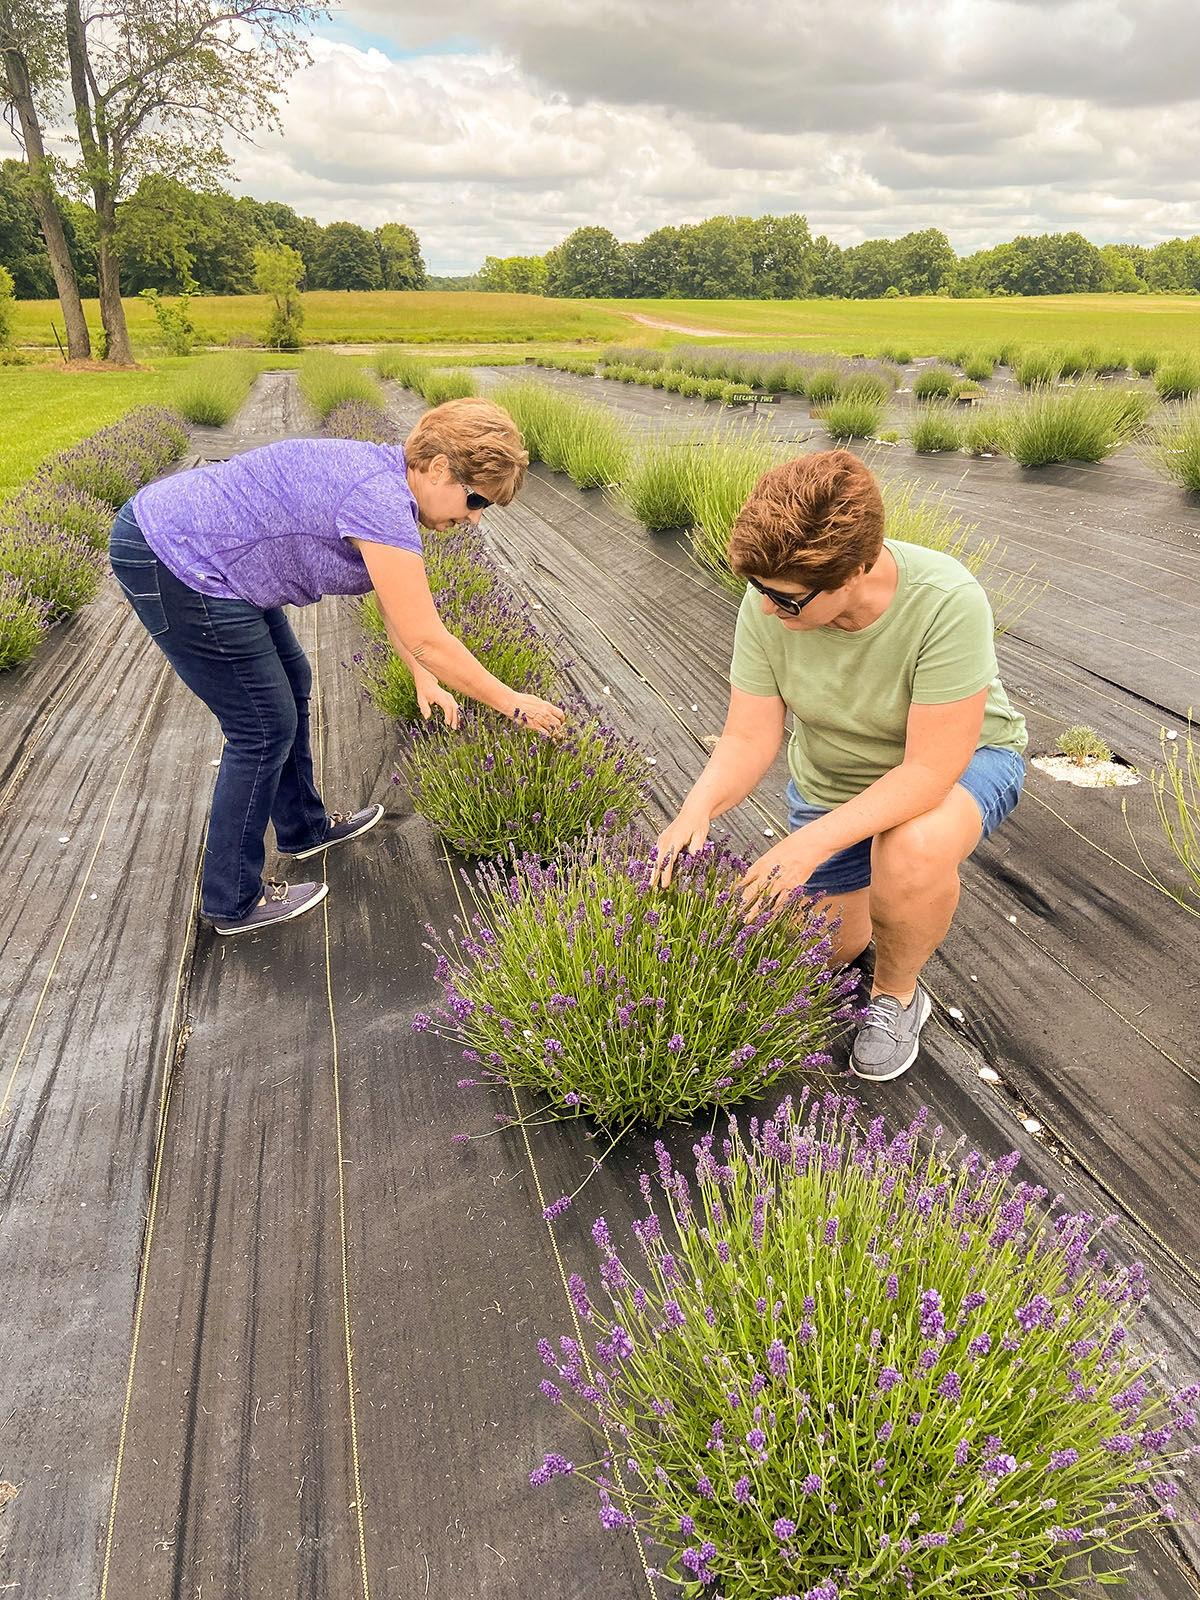 'Yes, you can grow lavender in Illinois'